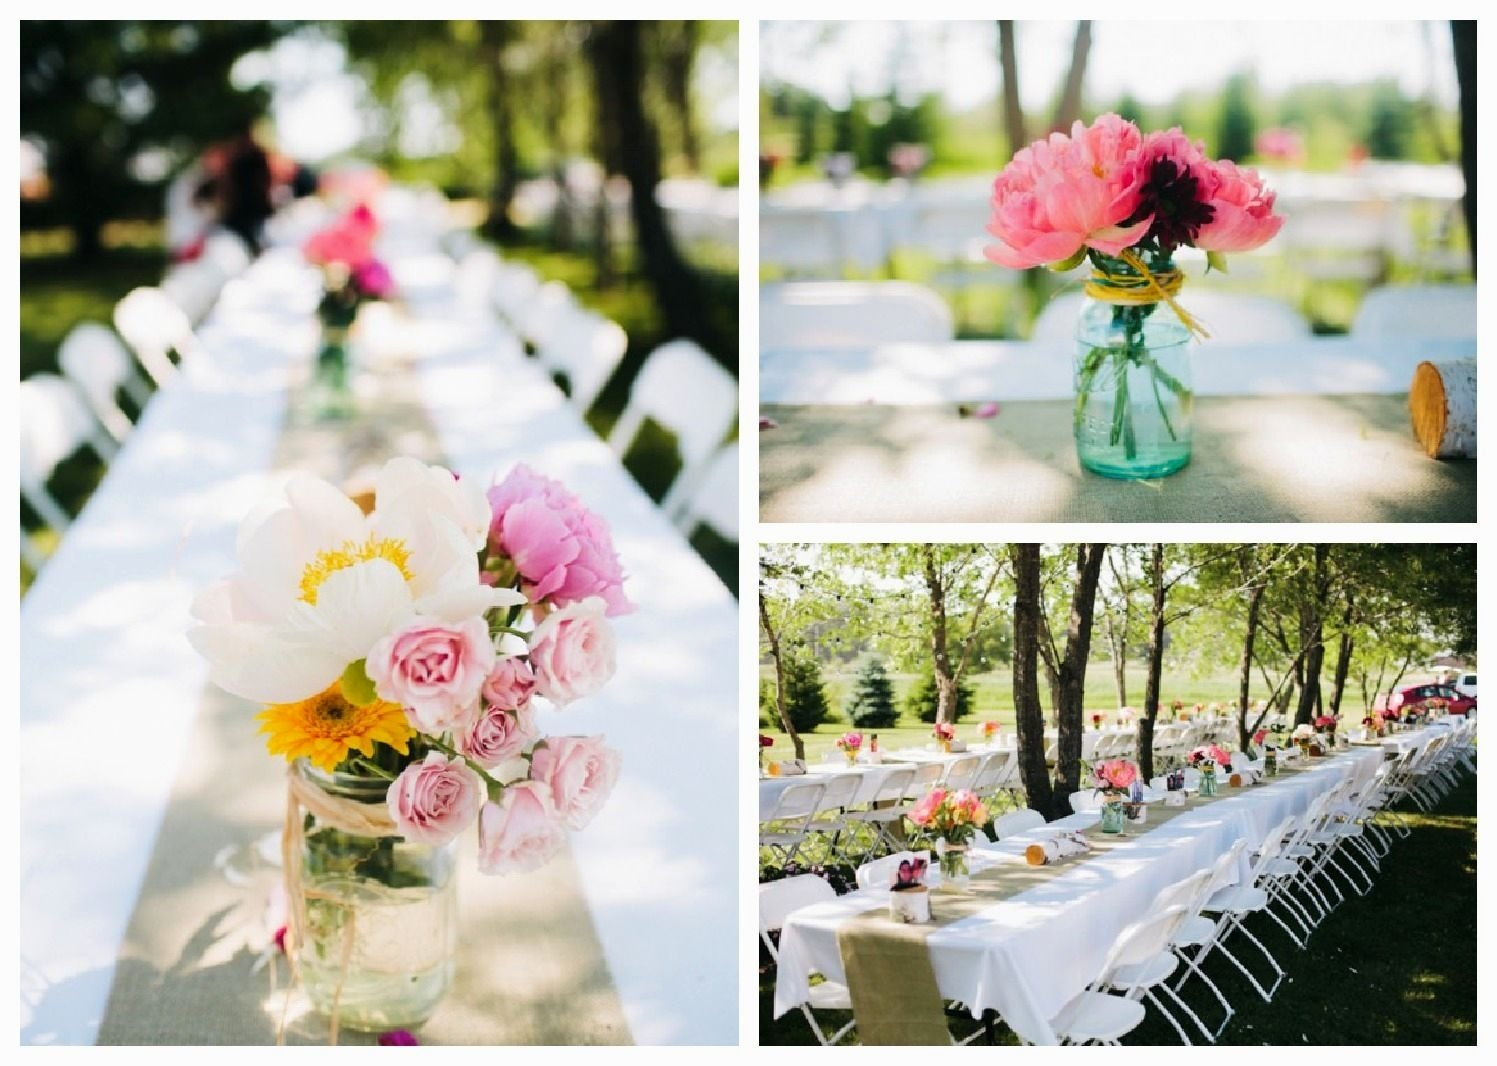 10 Perfect Table Decoration Ideas For Parties garden party table decoration ideas outdoor party table dunneiv